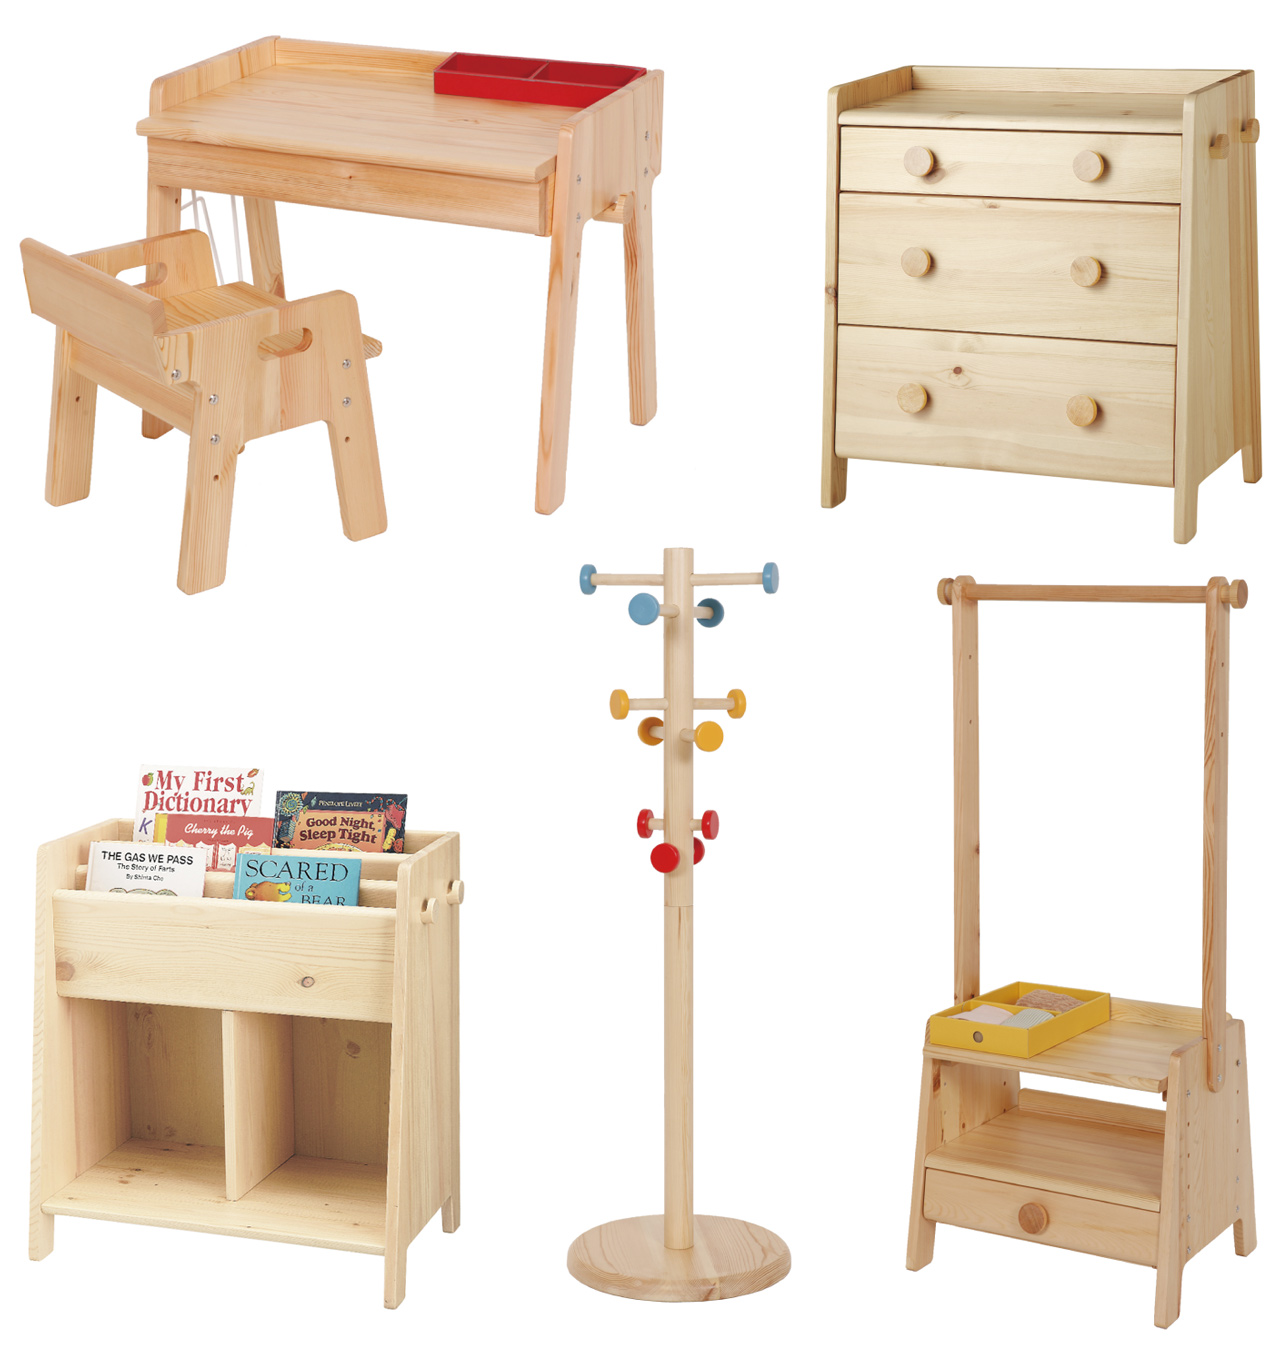 NewKidsFurniture_S6.jpg